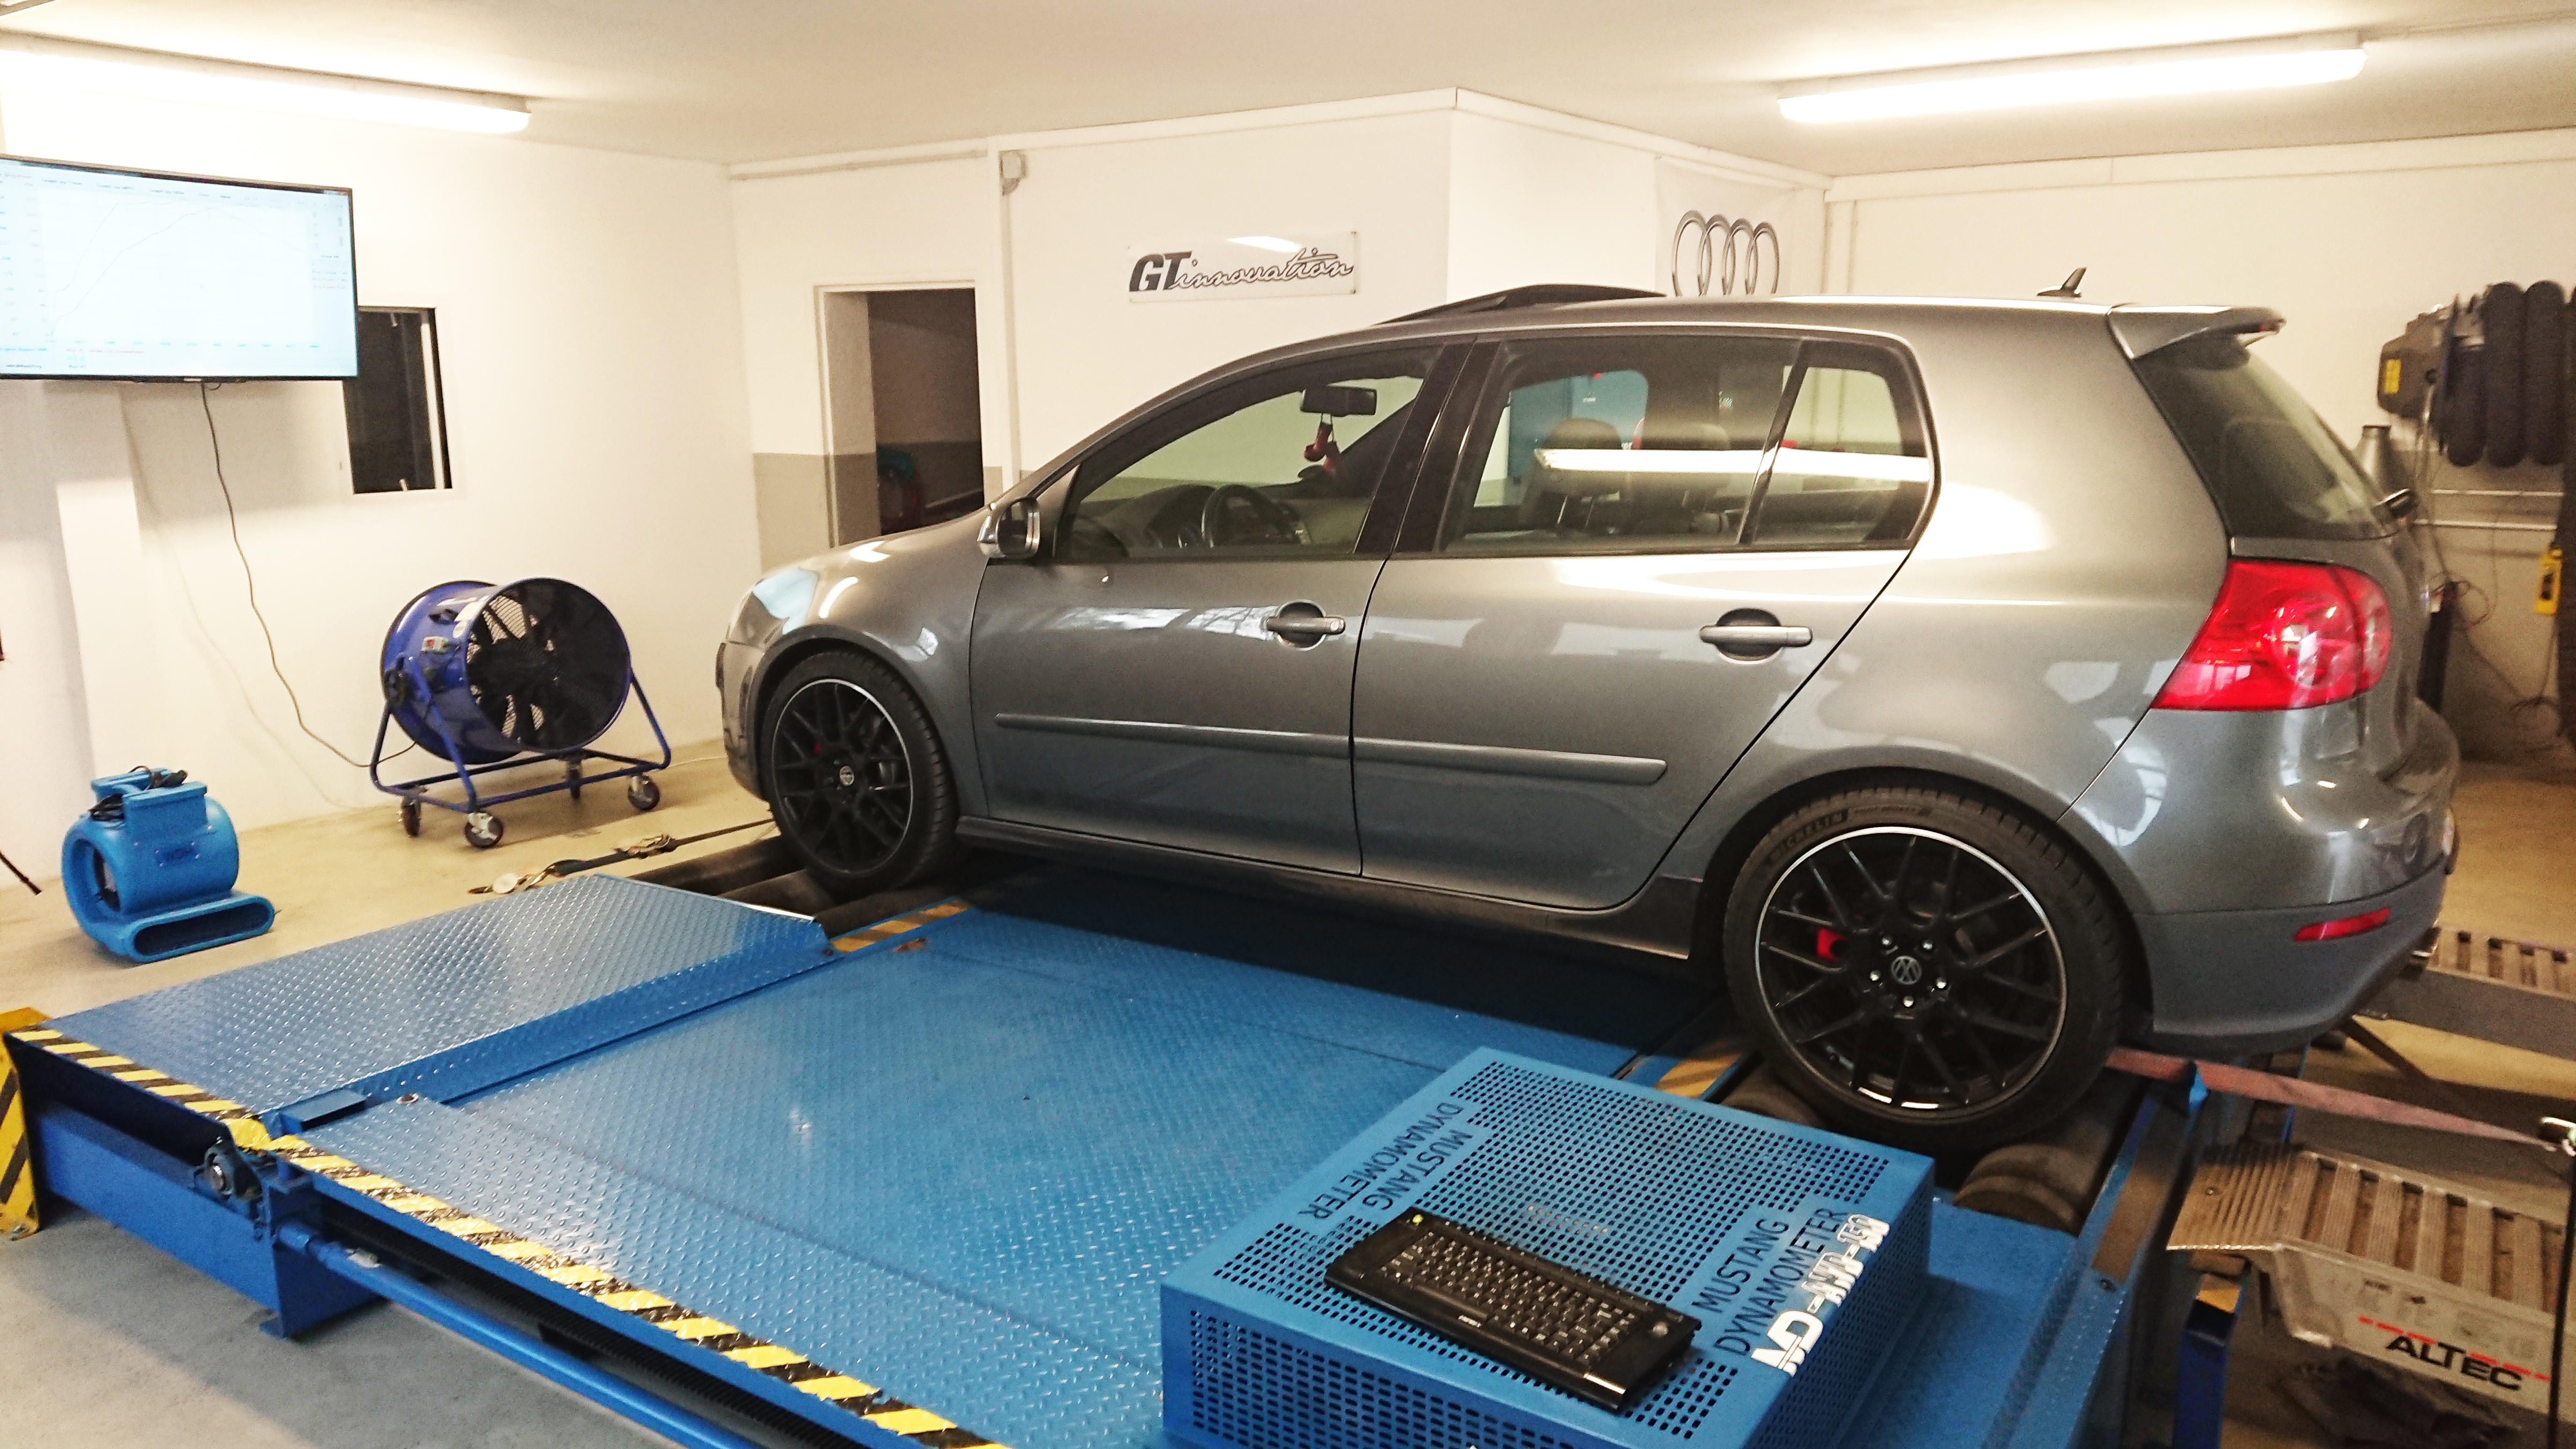 Vw Golf 5 GTI DSG Stage 1 253Ps 352nm — GT-innovation